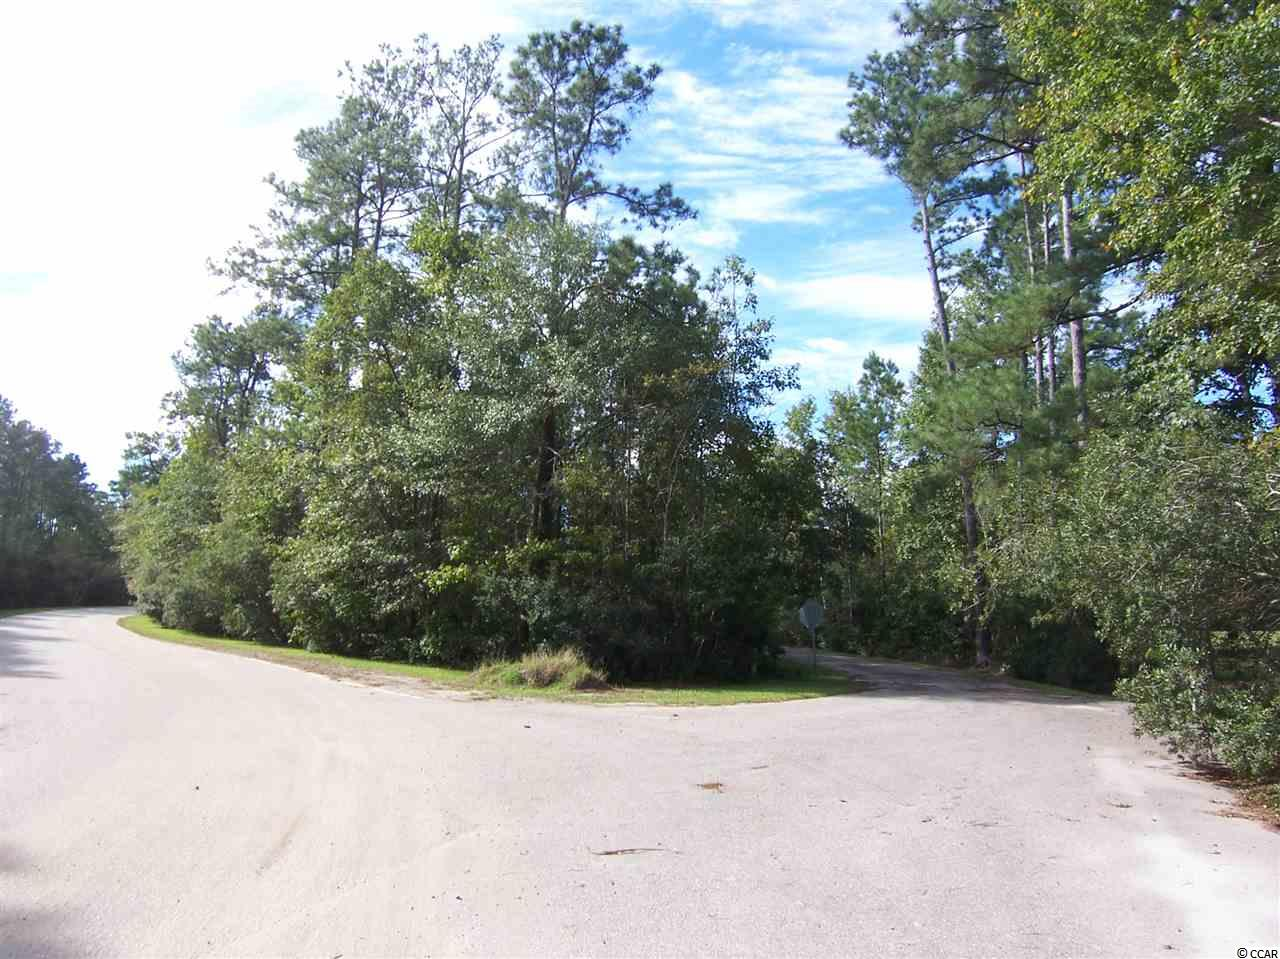 Land for sale in Myrtle Beach/Socastee area. Convenient to Rt 544 and Rt 31. Parcel of 2 lots totaling 1.35 acre, zoned residential. Short drive, about 8 miles to beaches. Make an offer!   NOTE: A variance for the setback on the lot is required prior to building. Ask your realtor about the details.